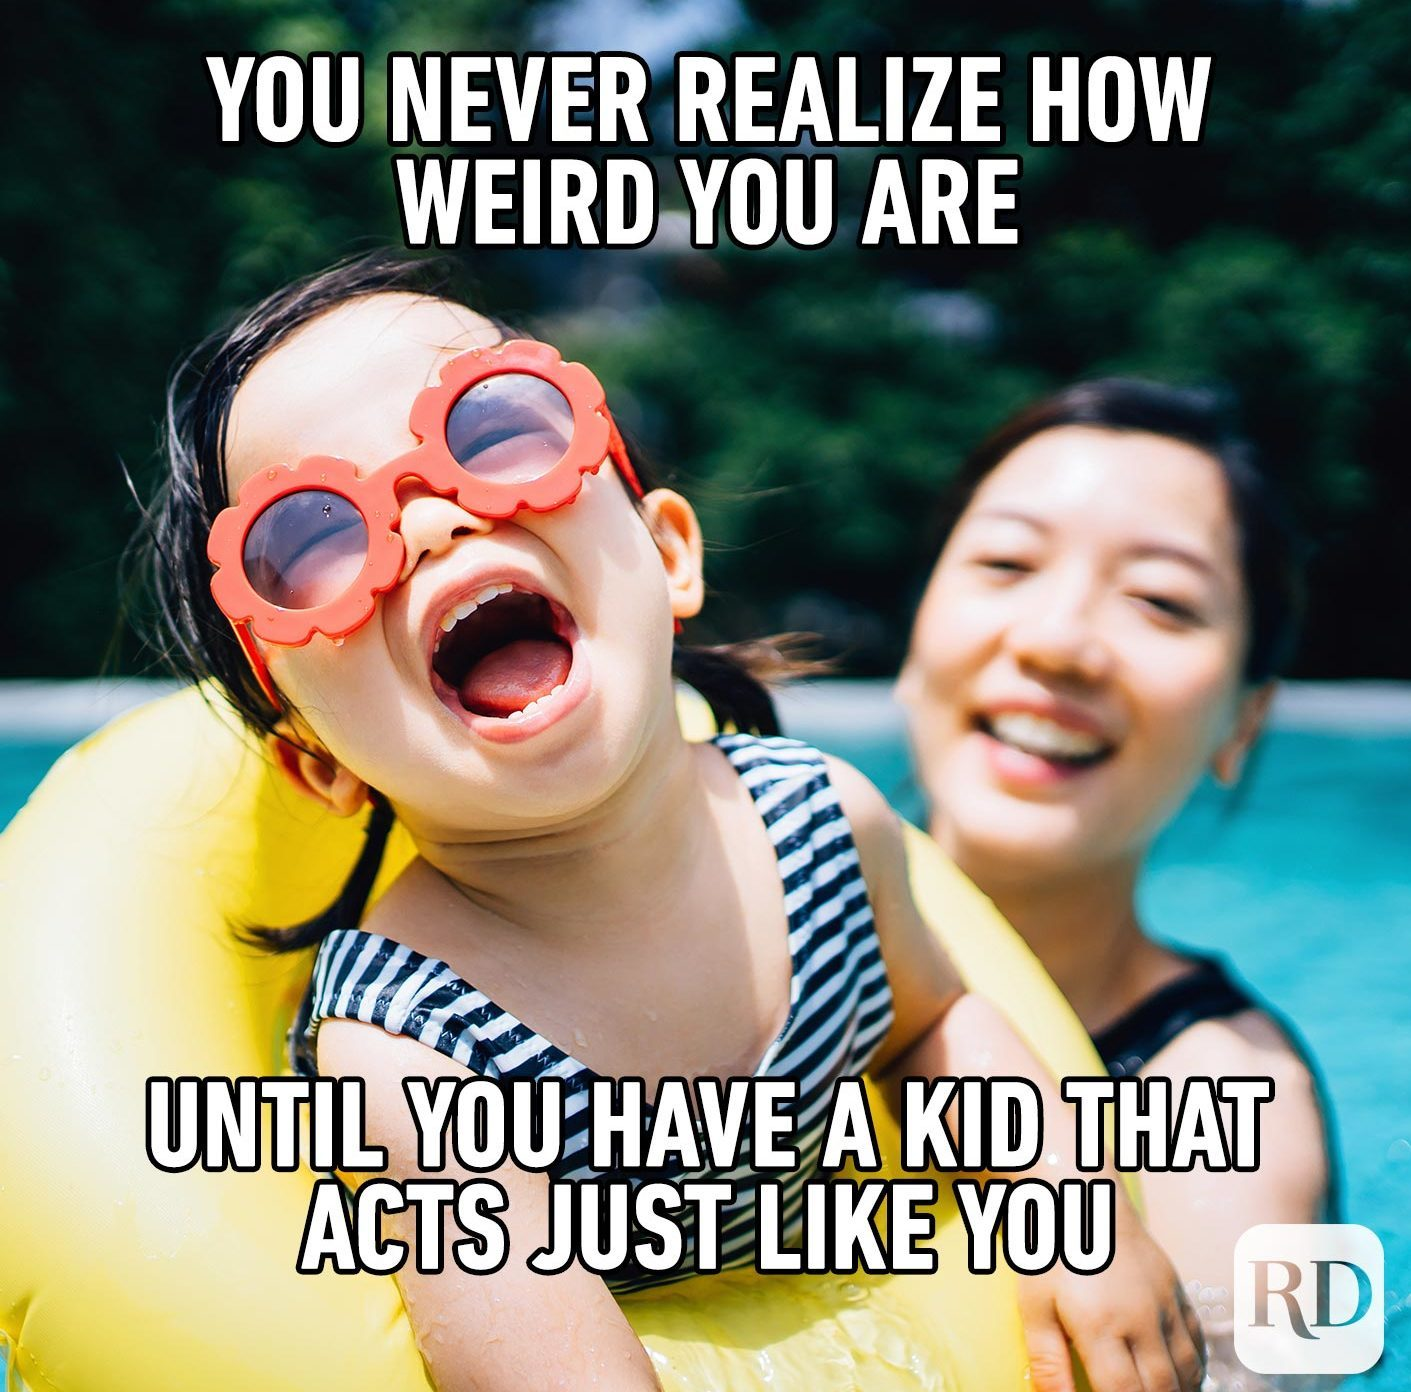 Mom and daughter in the pool, screaming and laughing. MEME TEXT: You never realize how weird you are until you have a kid that acts just like you